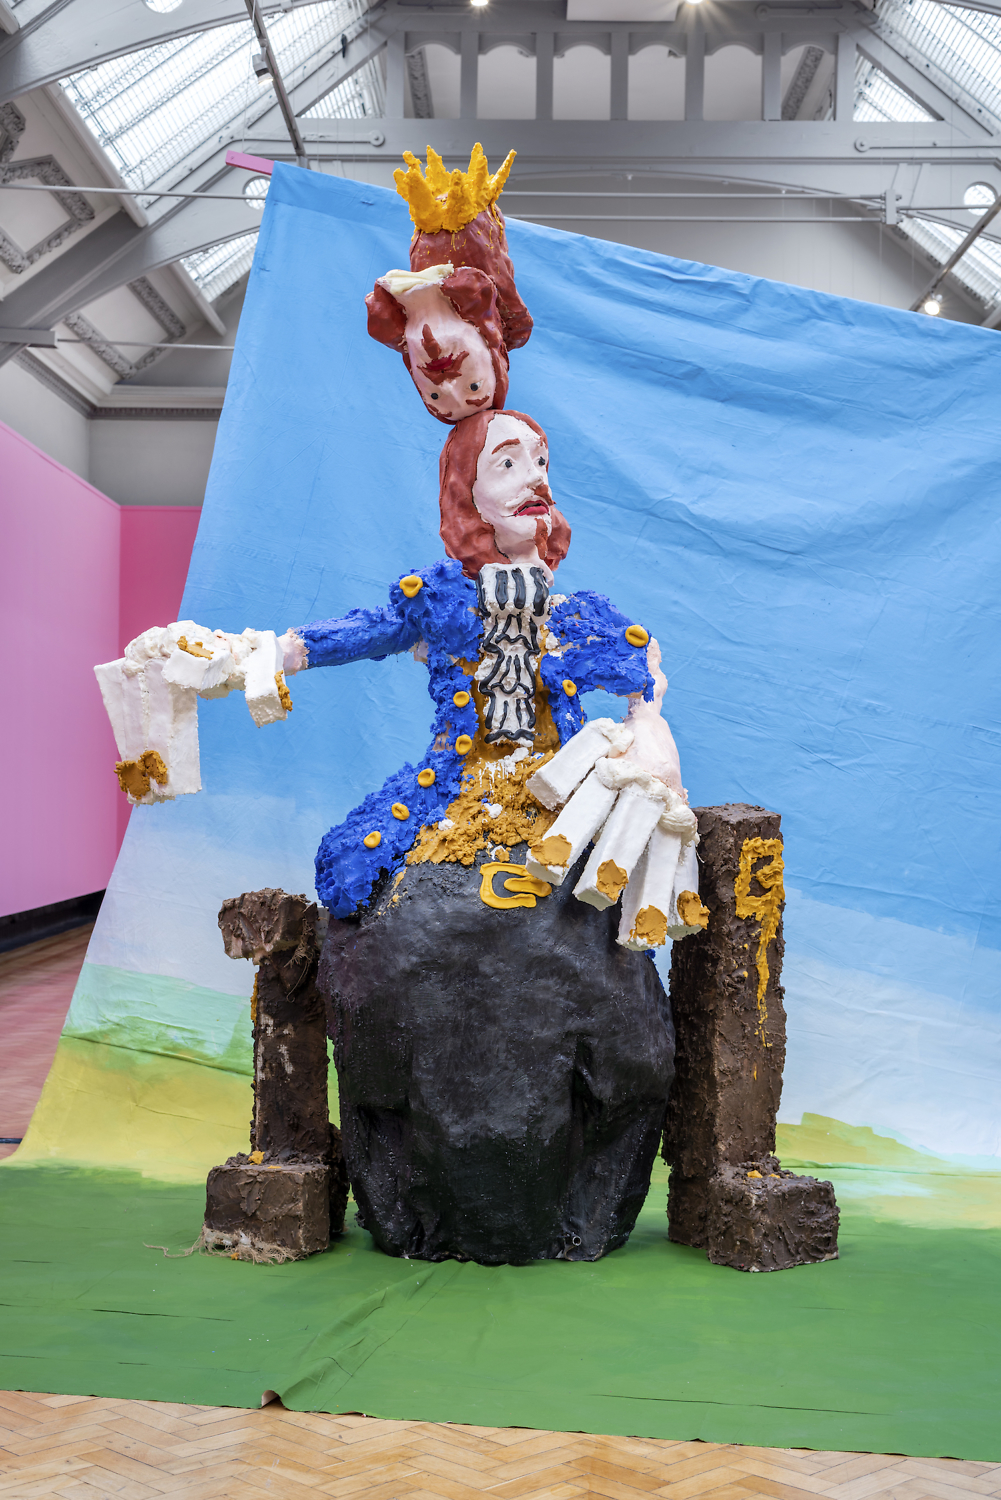 Jamie Fitzpatrick, The King, 2019. Wax, Polystyrene, Silicone, Hessian, Steel, Wood, Audio Equipment & Animatronic Components. 296 x 176 x 159 cm.